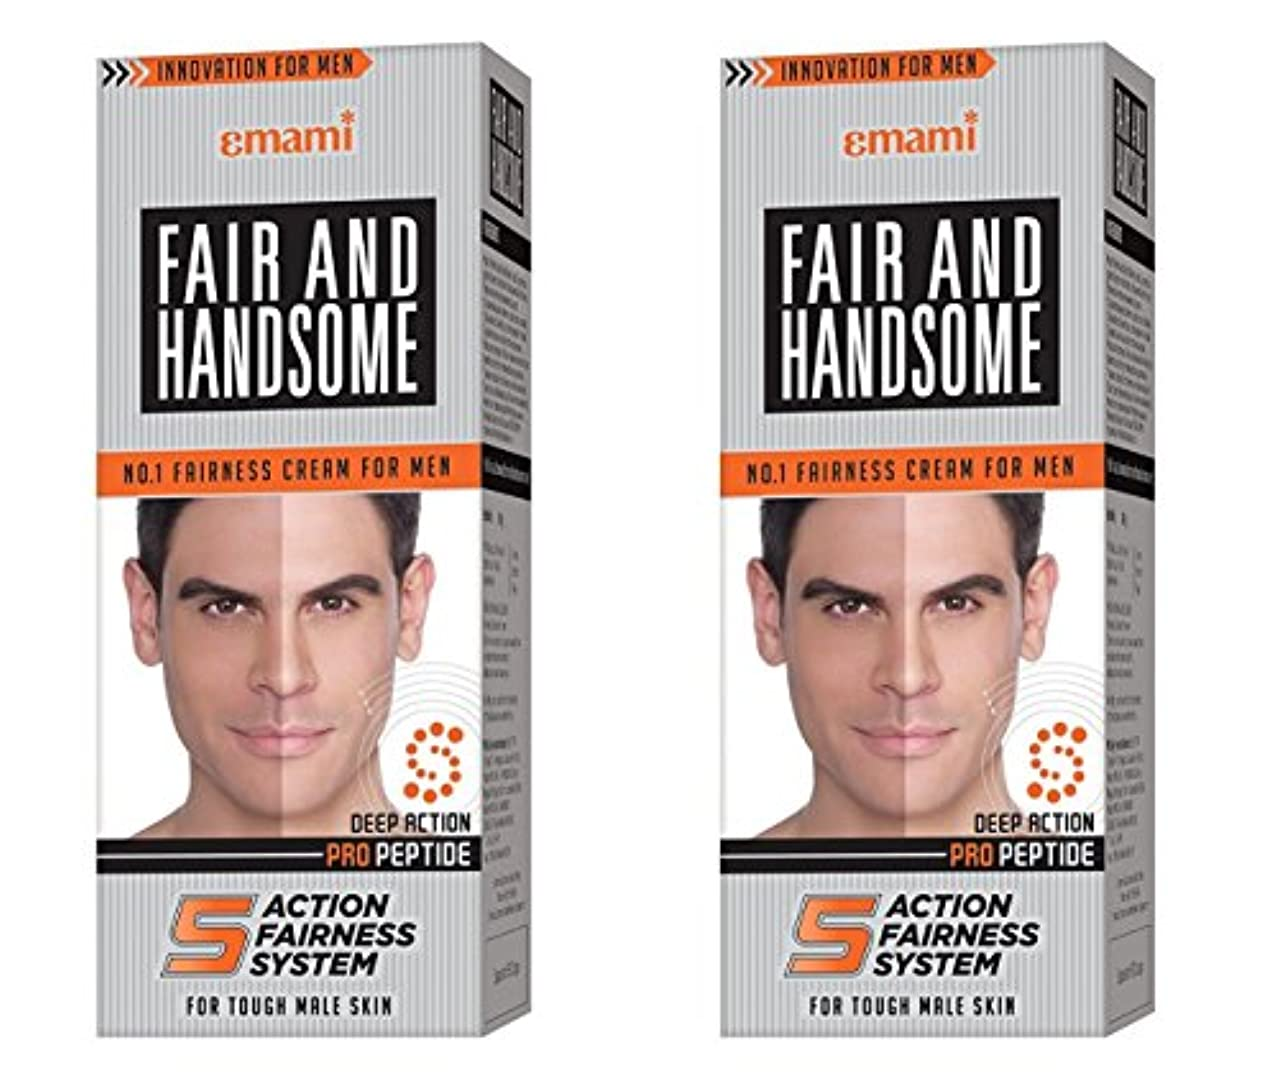 Fair and Handsome Fairness Cream for Men, 60gm (Pack of 2)